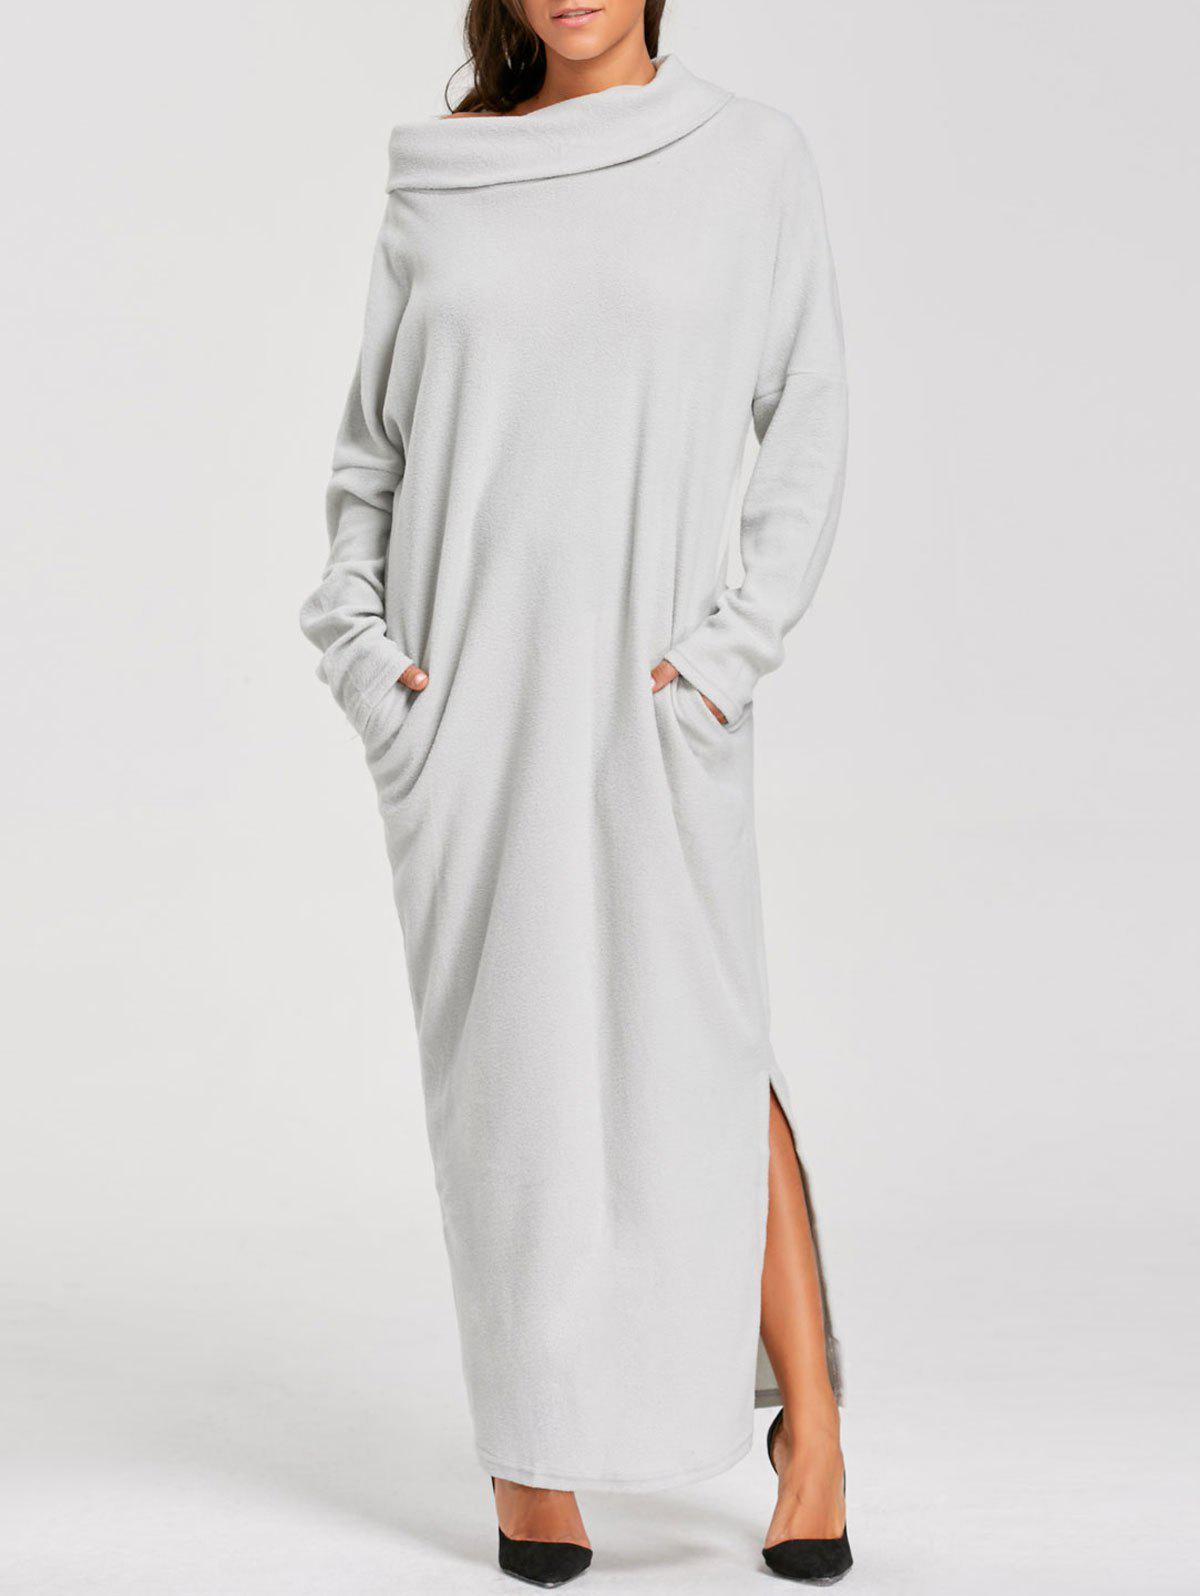 Pocket Turtleneck Long Sleeve Floor Length DressWOMEN<br><br>Size: XL; Color: LIGHT GRAY; Style: Casual; Material: Cotton Blend,Polyester; Silhouette: Straight; Dresses Length: Floor-Length; Neckline: Convertible Collar; Sleeve Length: Long Sleeves; Pattern Type: Solid; With Belt: No; Season: Fall,Winter; Weight: 0.3900kg; Package Contents: 1 x Dress;